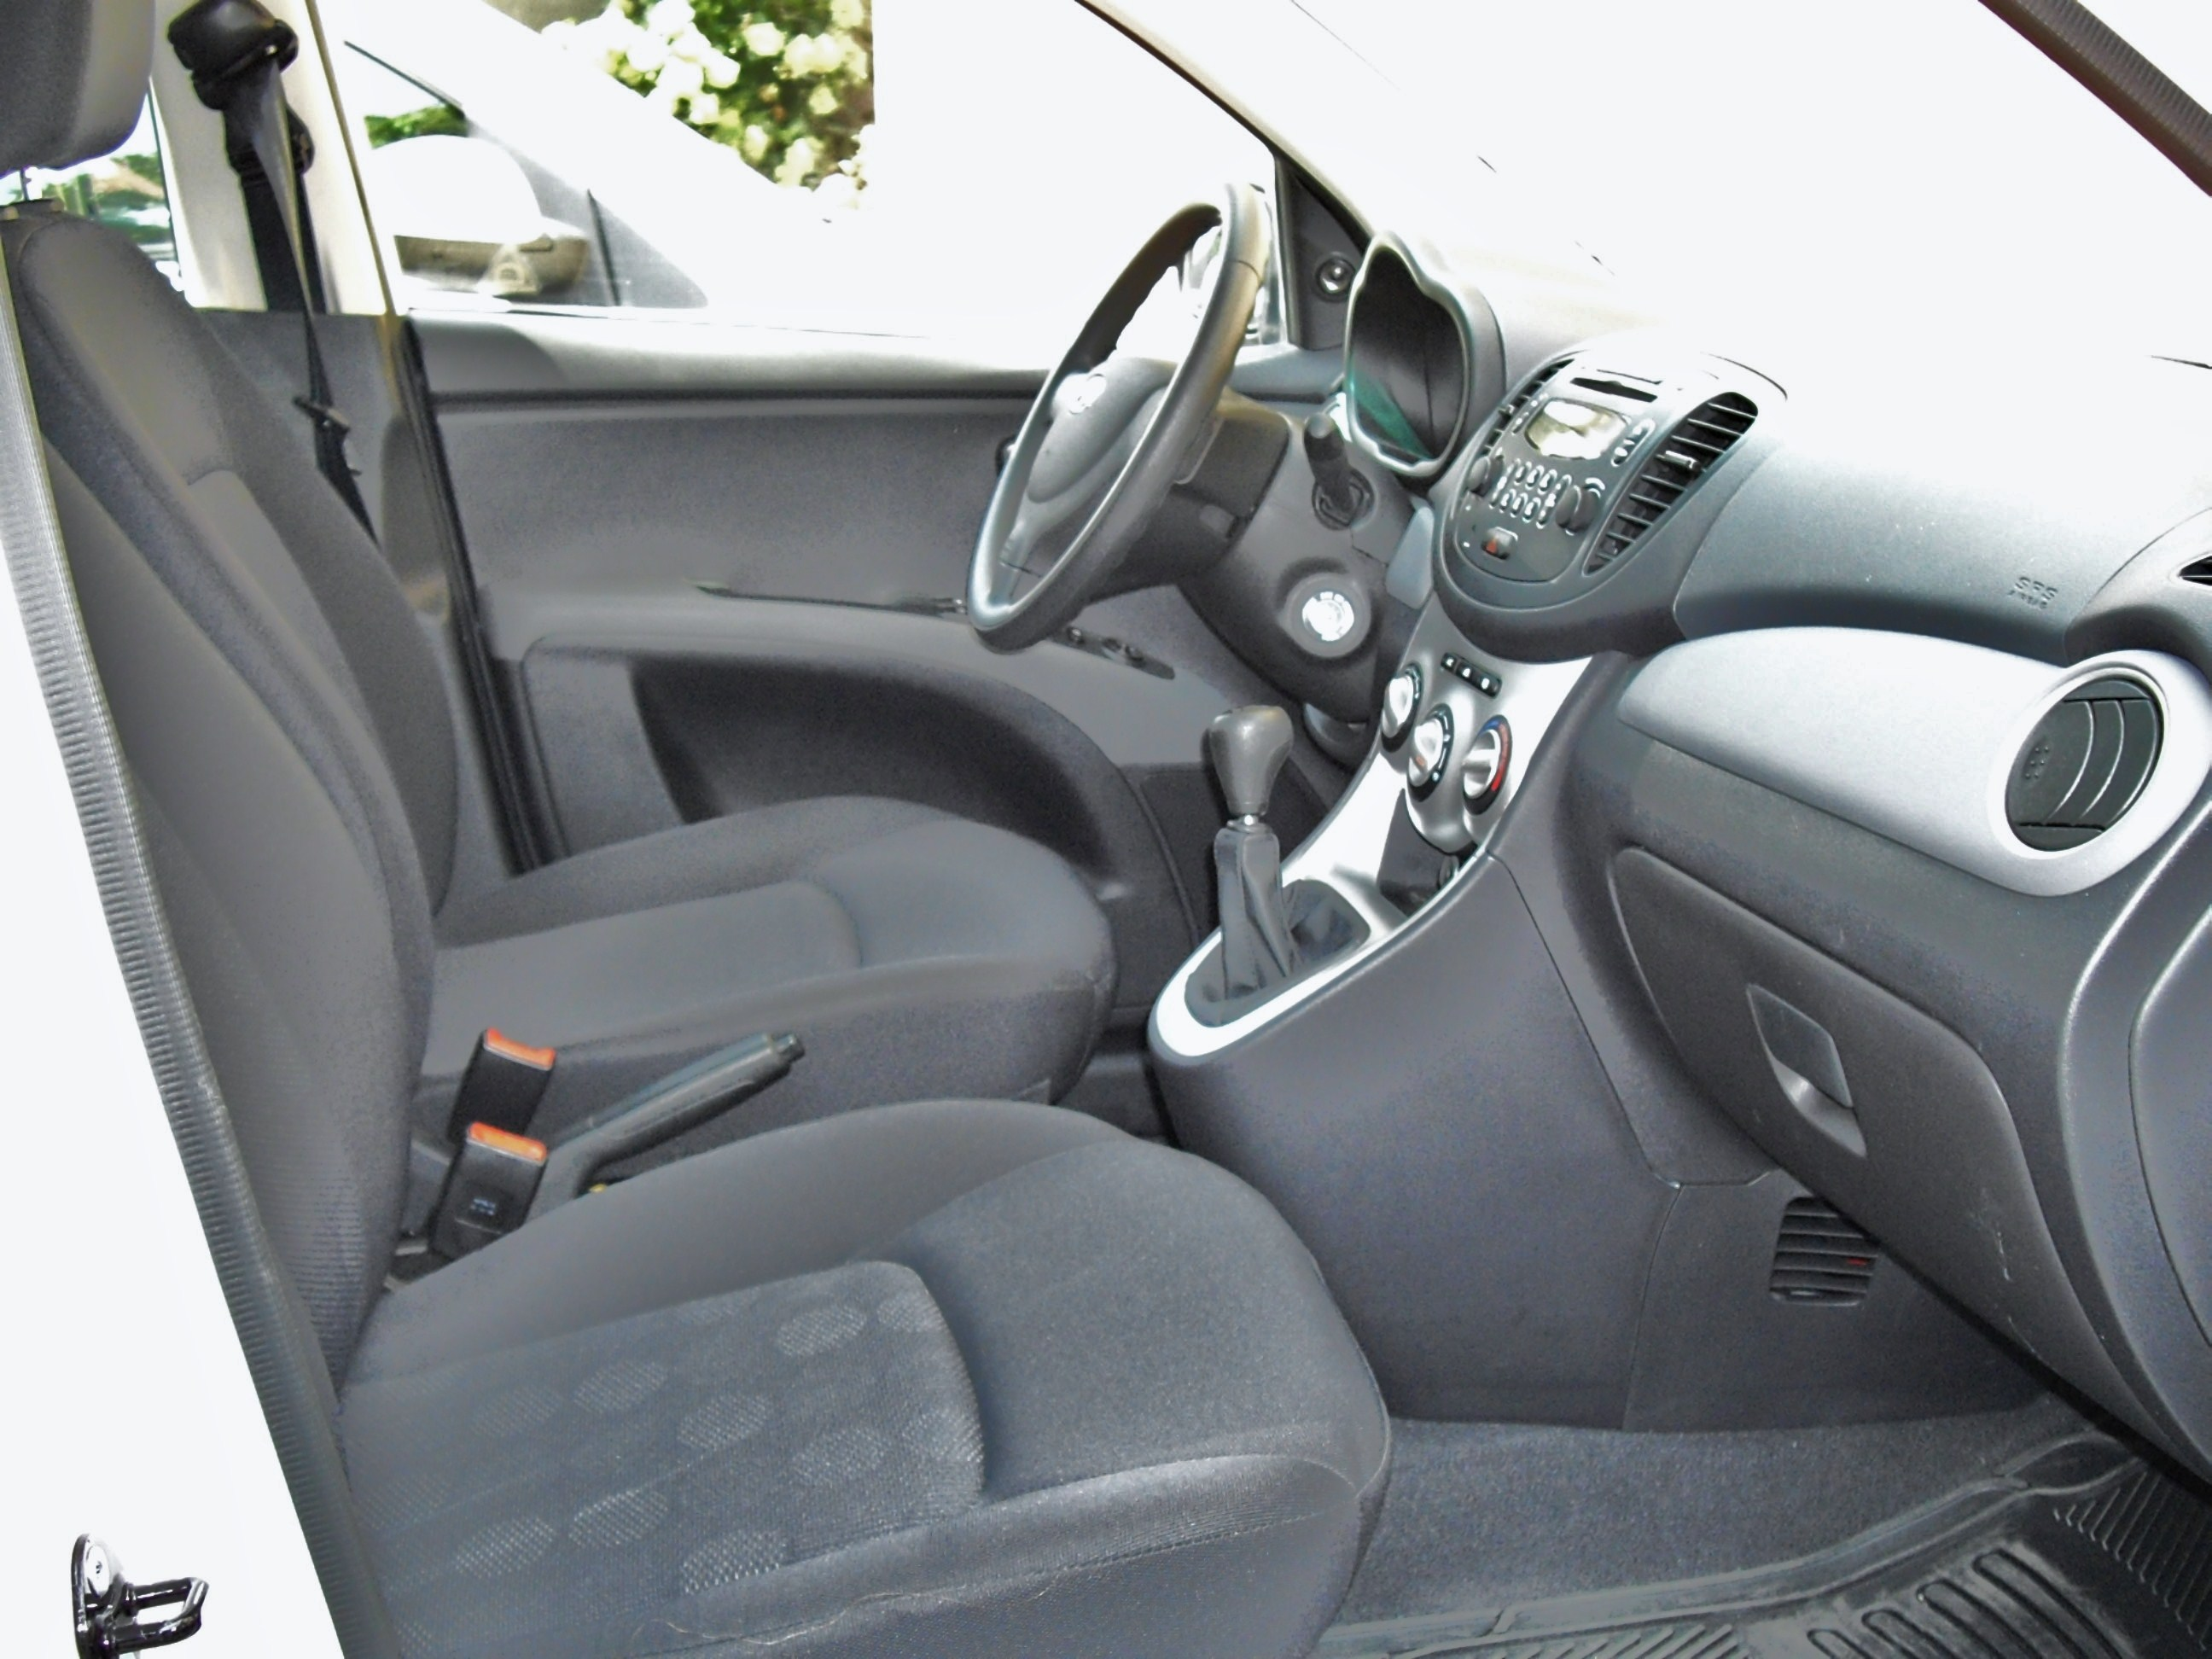 File:Hyundai i10 Active interior.JPG - Wikimedia Commons